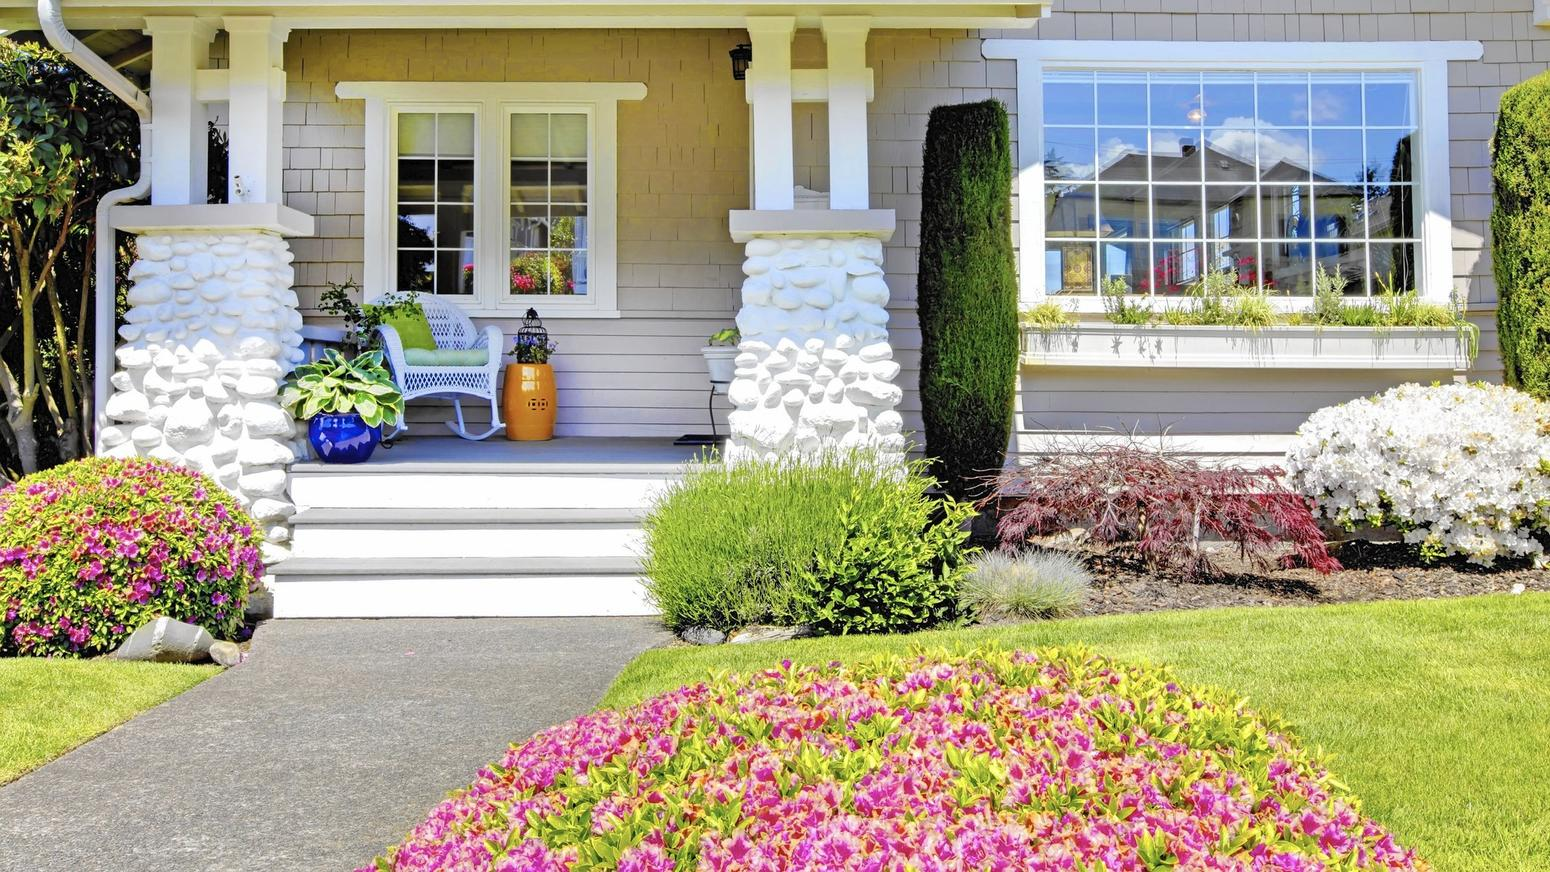 Curb appeal landscaping ideas for a house with flat roof for Curb appeal landscaping